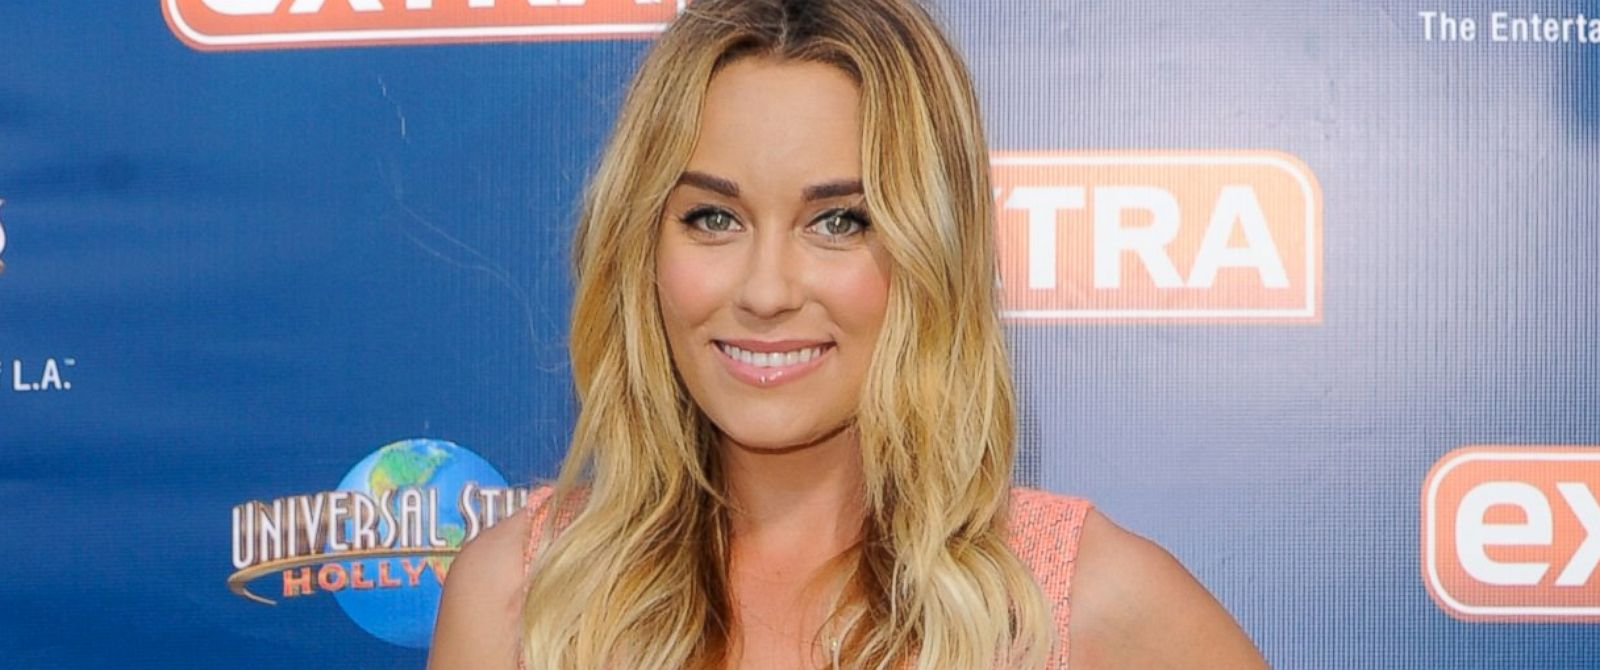 "PHOTO: Lauren Conrad visits ""Extra"" at Universal Studios Hollywood on June 9, 2014 in Universal City, Calif."